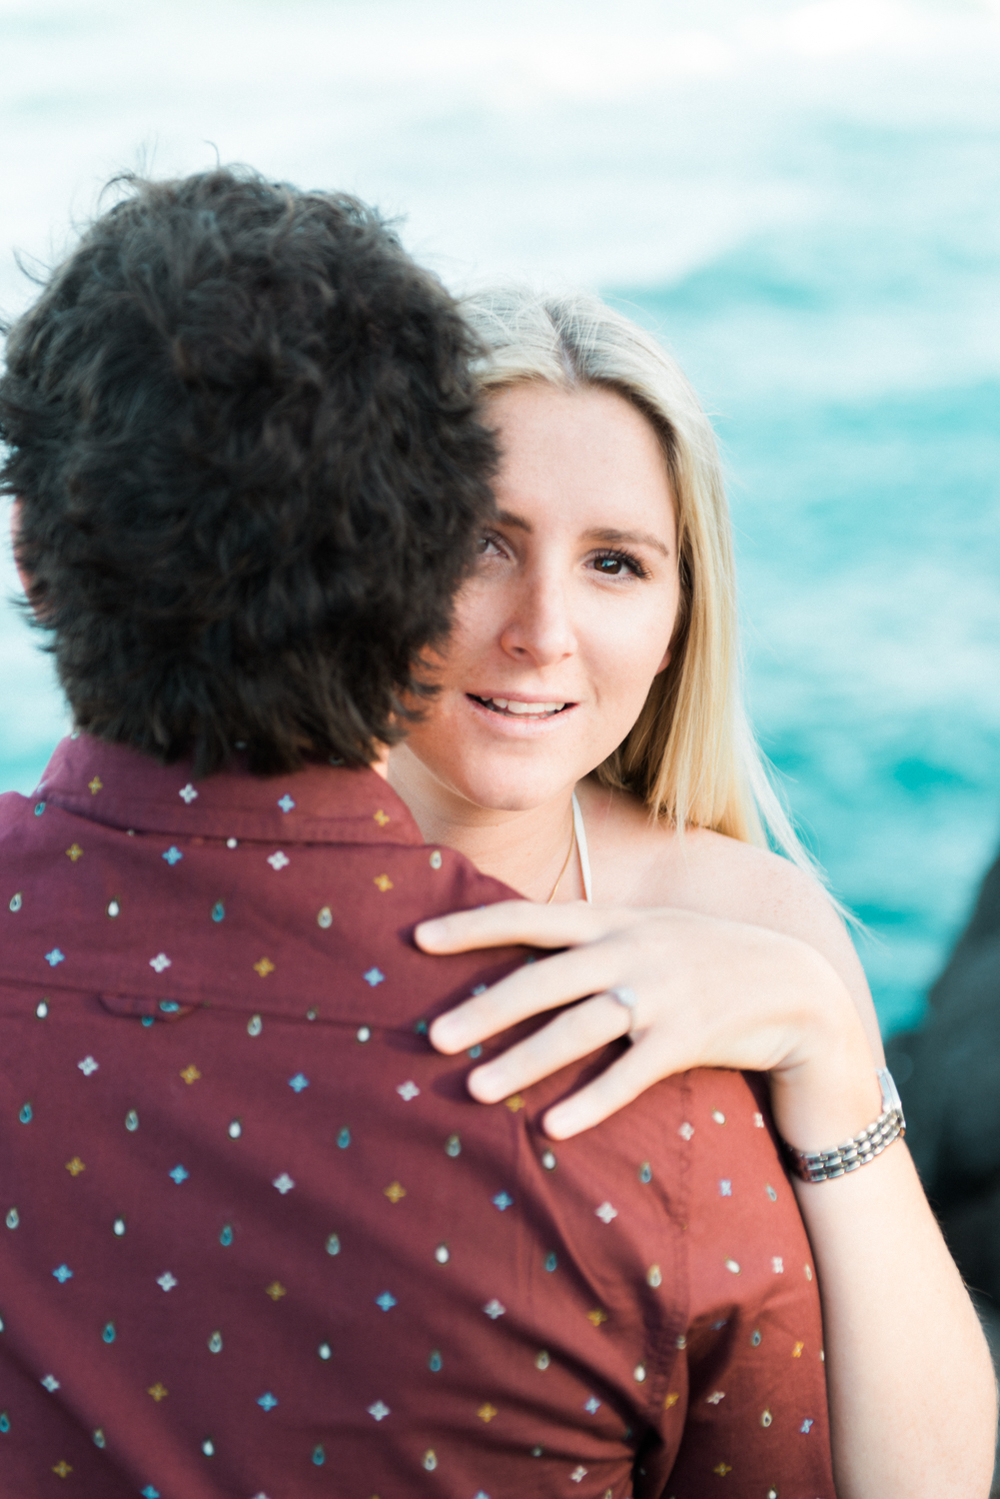 Jake_and_Steph_engagement--3.jpg